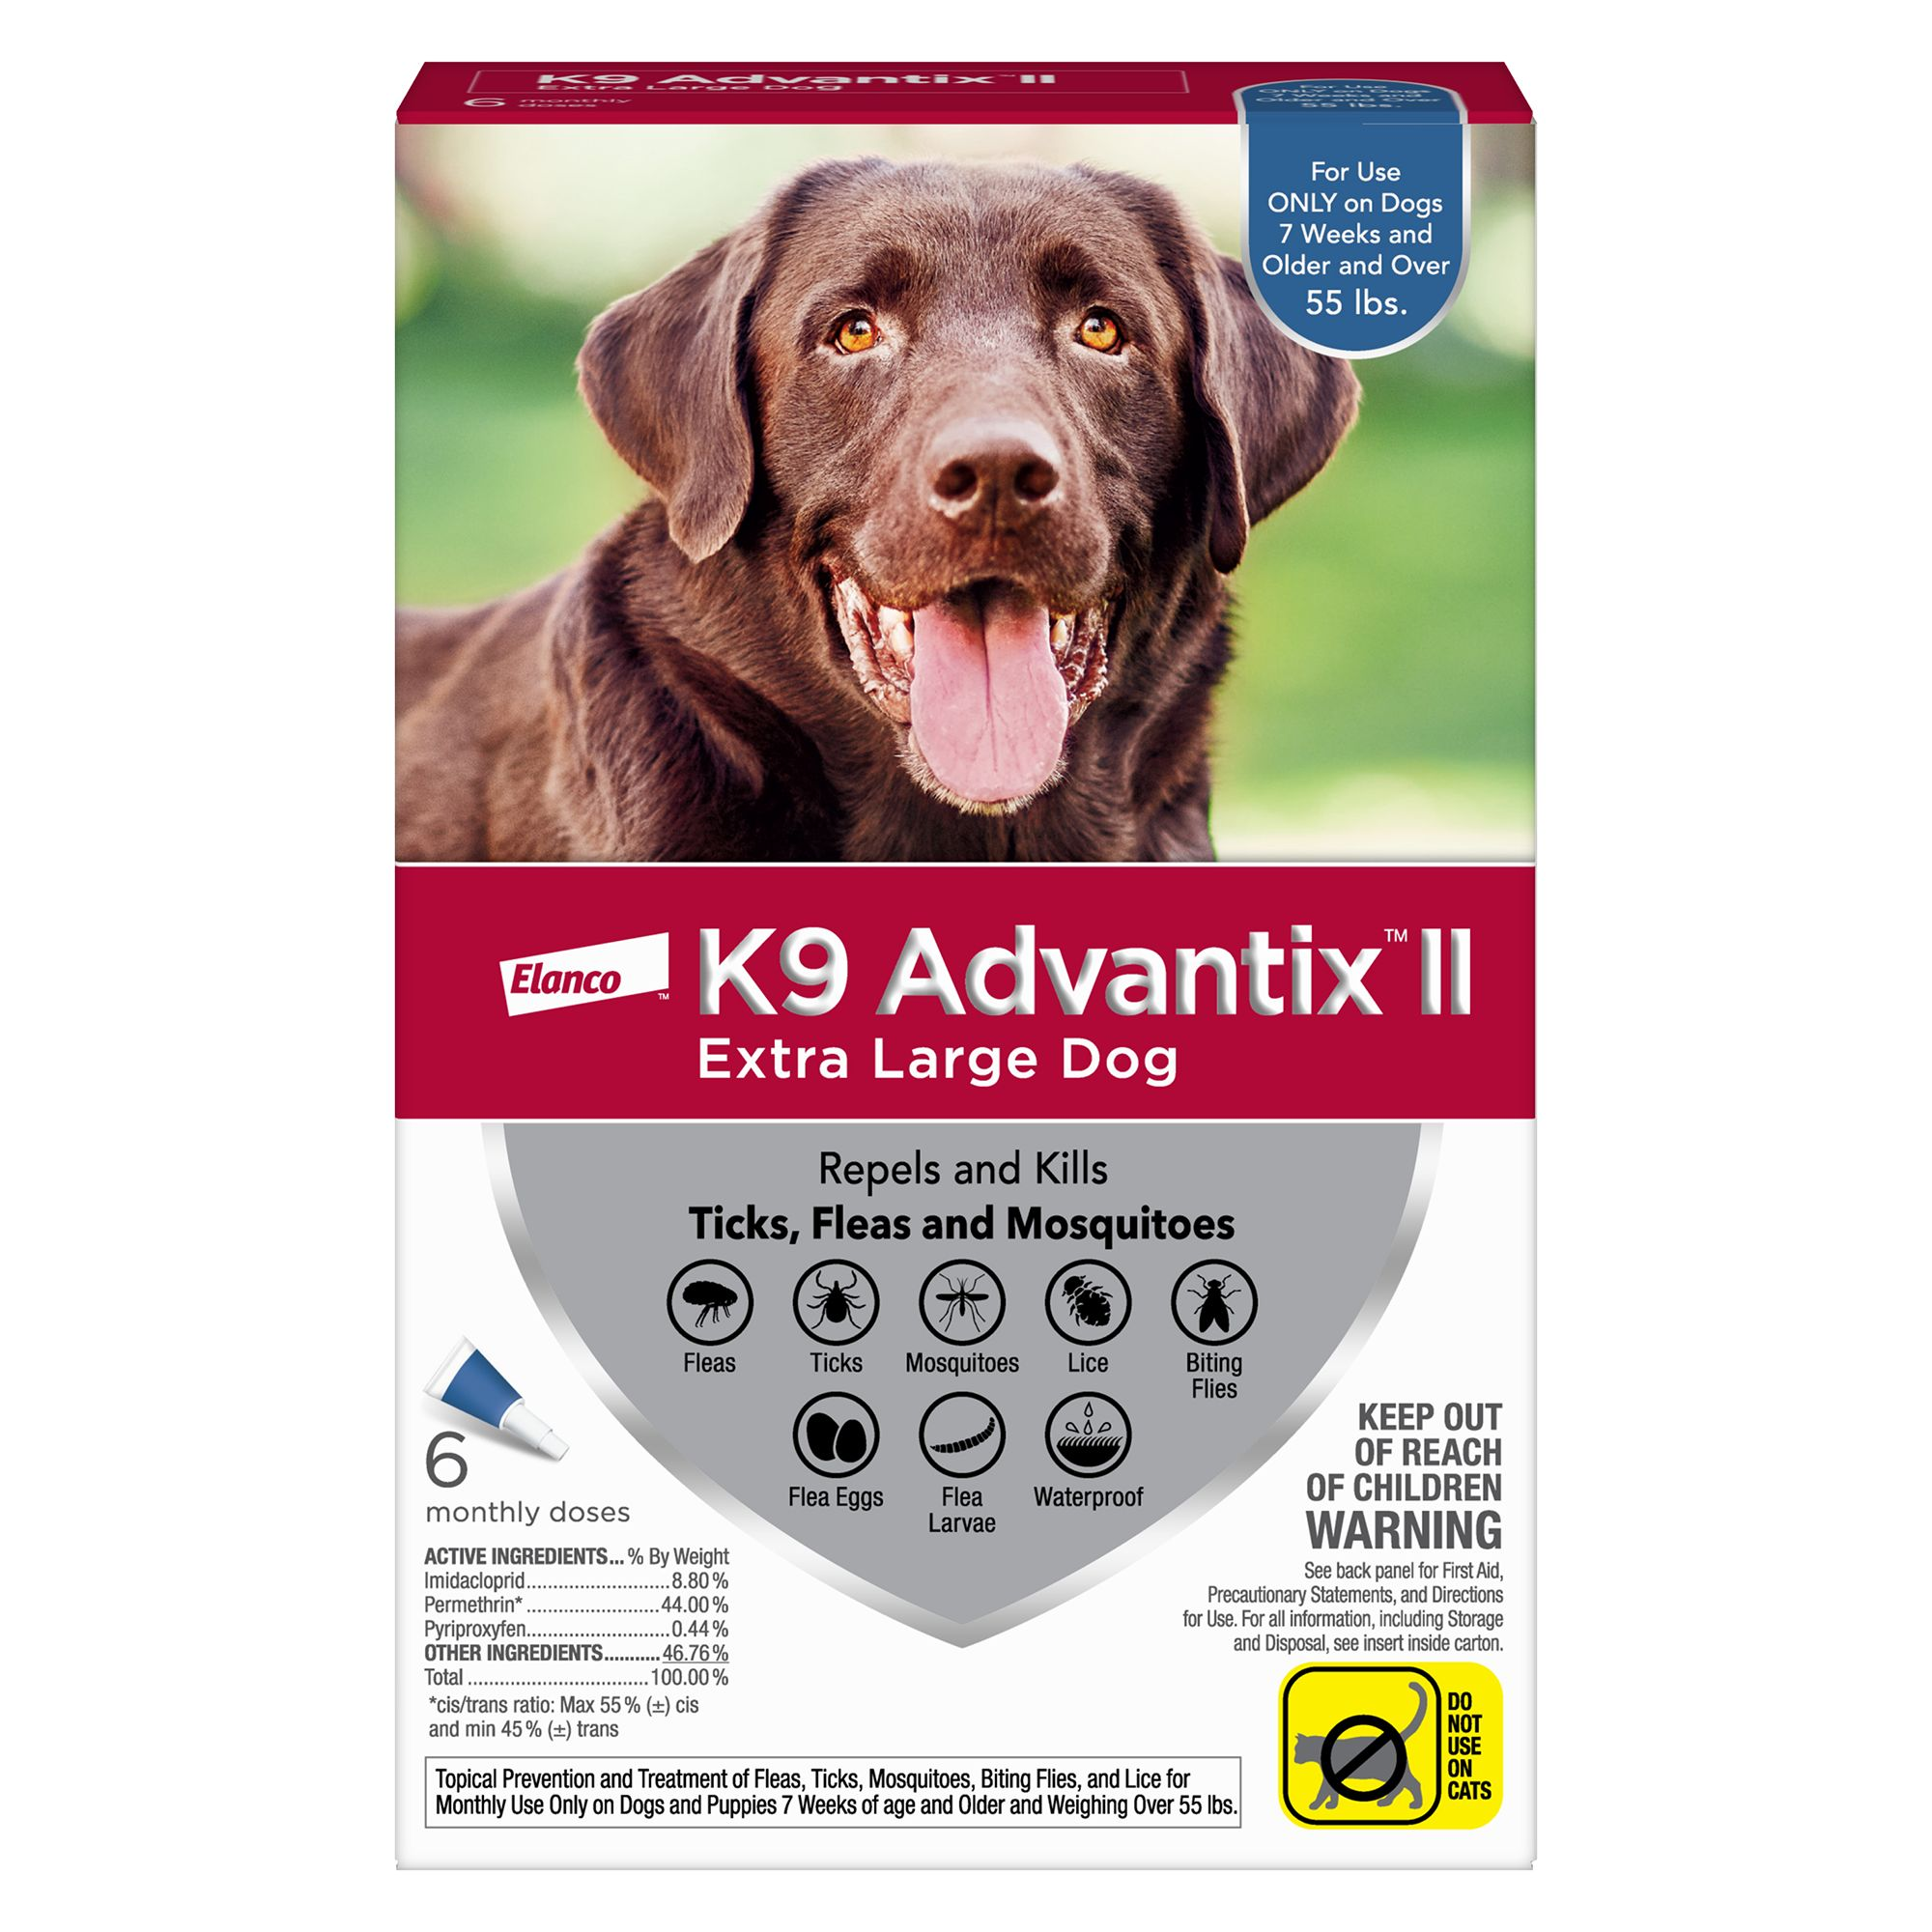 K9 Advantix Ii Over 55 Lbs Dog Flea And Tick Treatment Size 6 Count